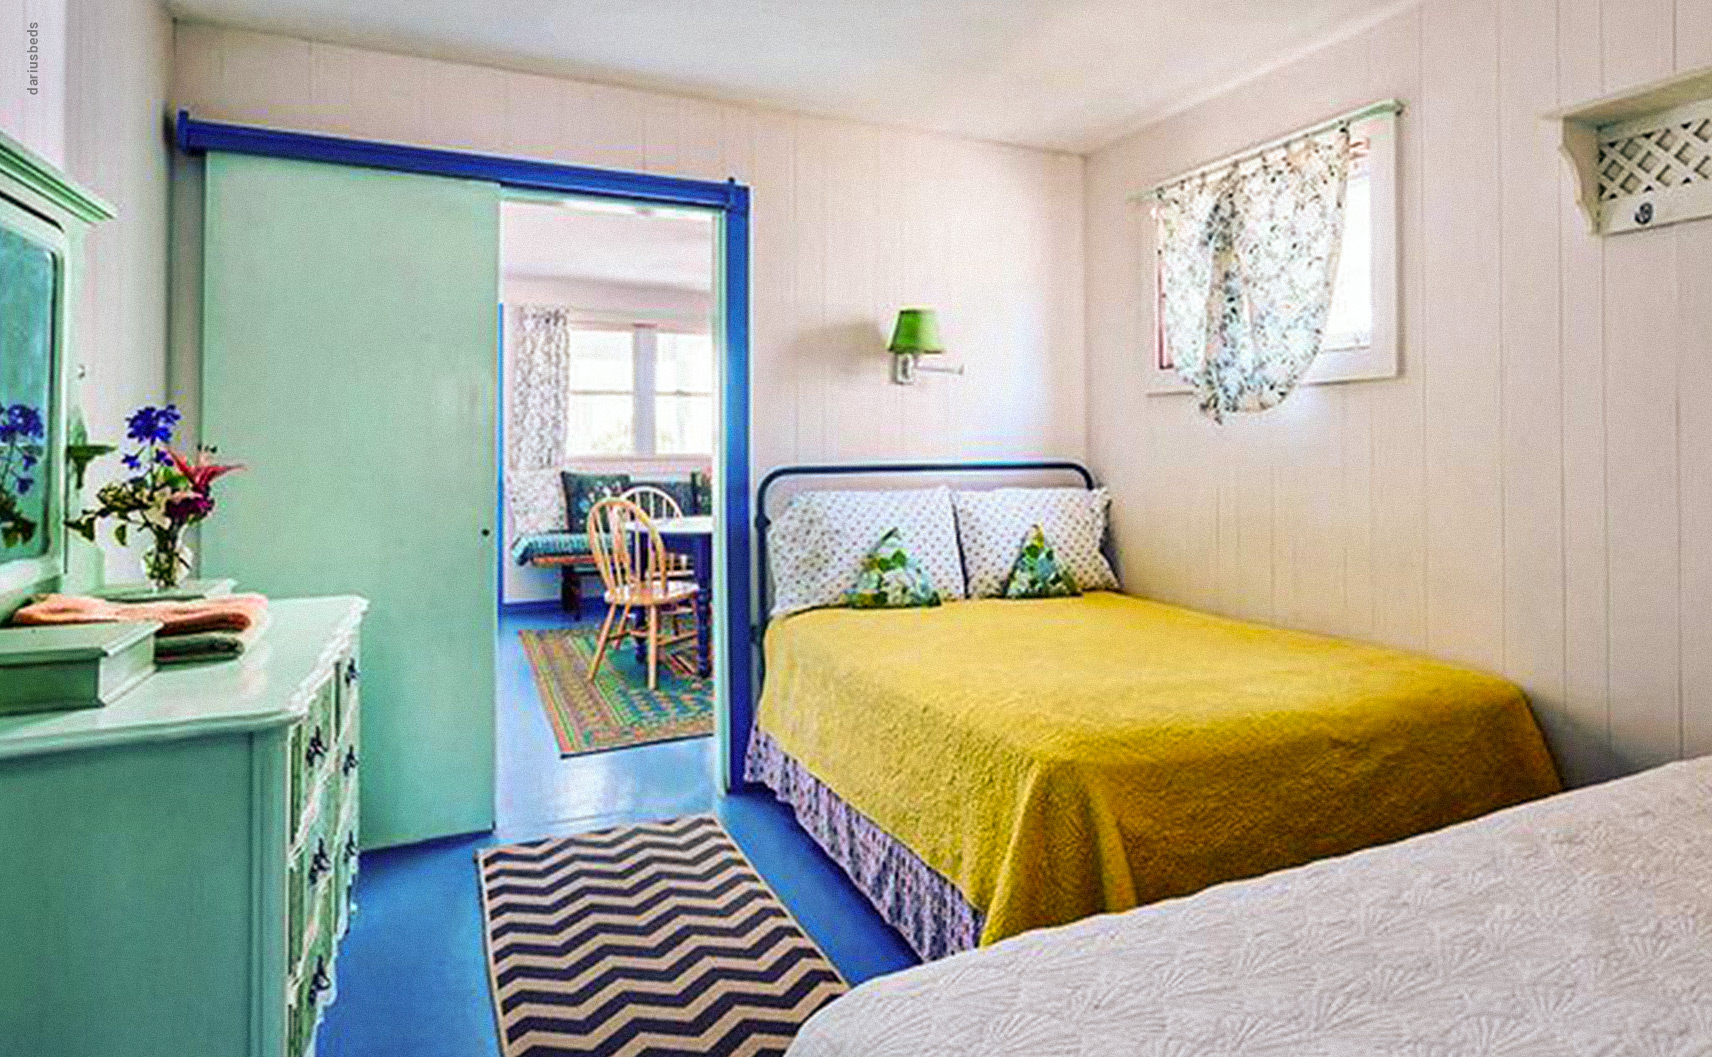 Plan Your Trip Part 3: Accomodations